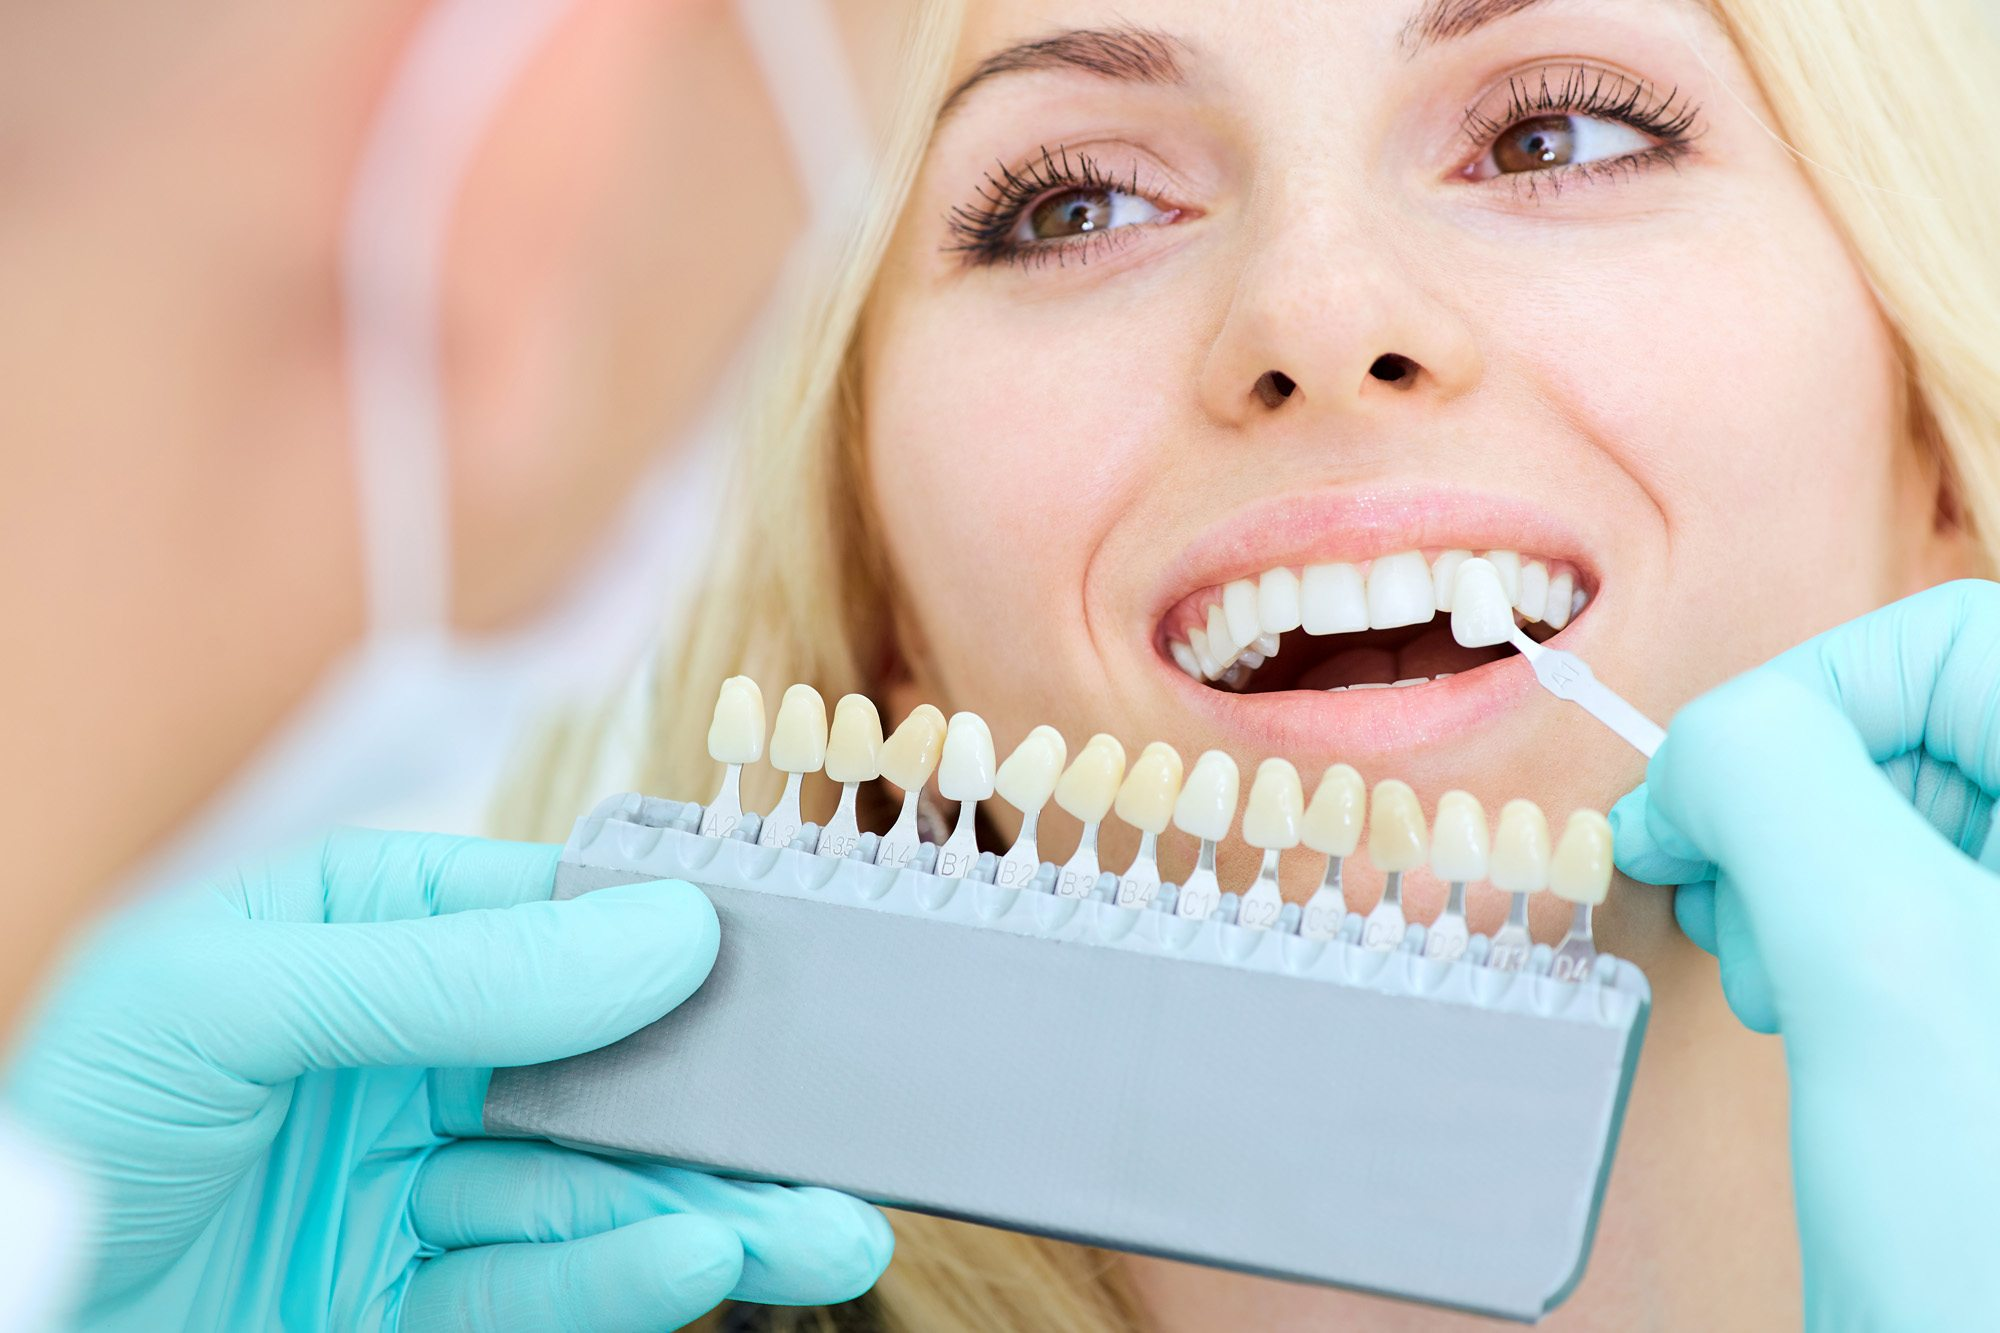 https://dentalopolis.com/wp-content/uploads/2018/02/Teeth-Whitening.jpg